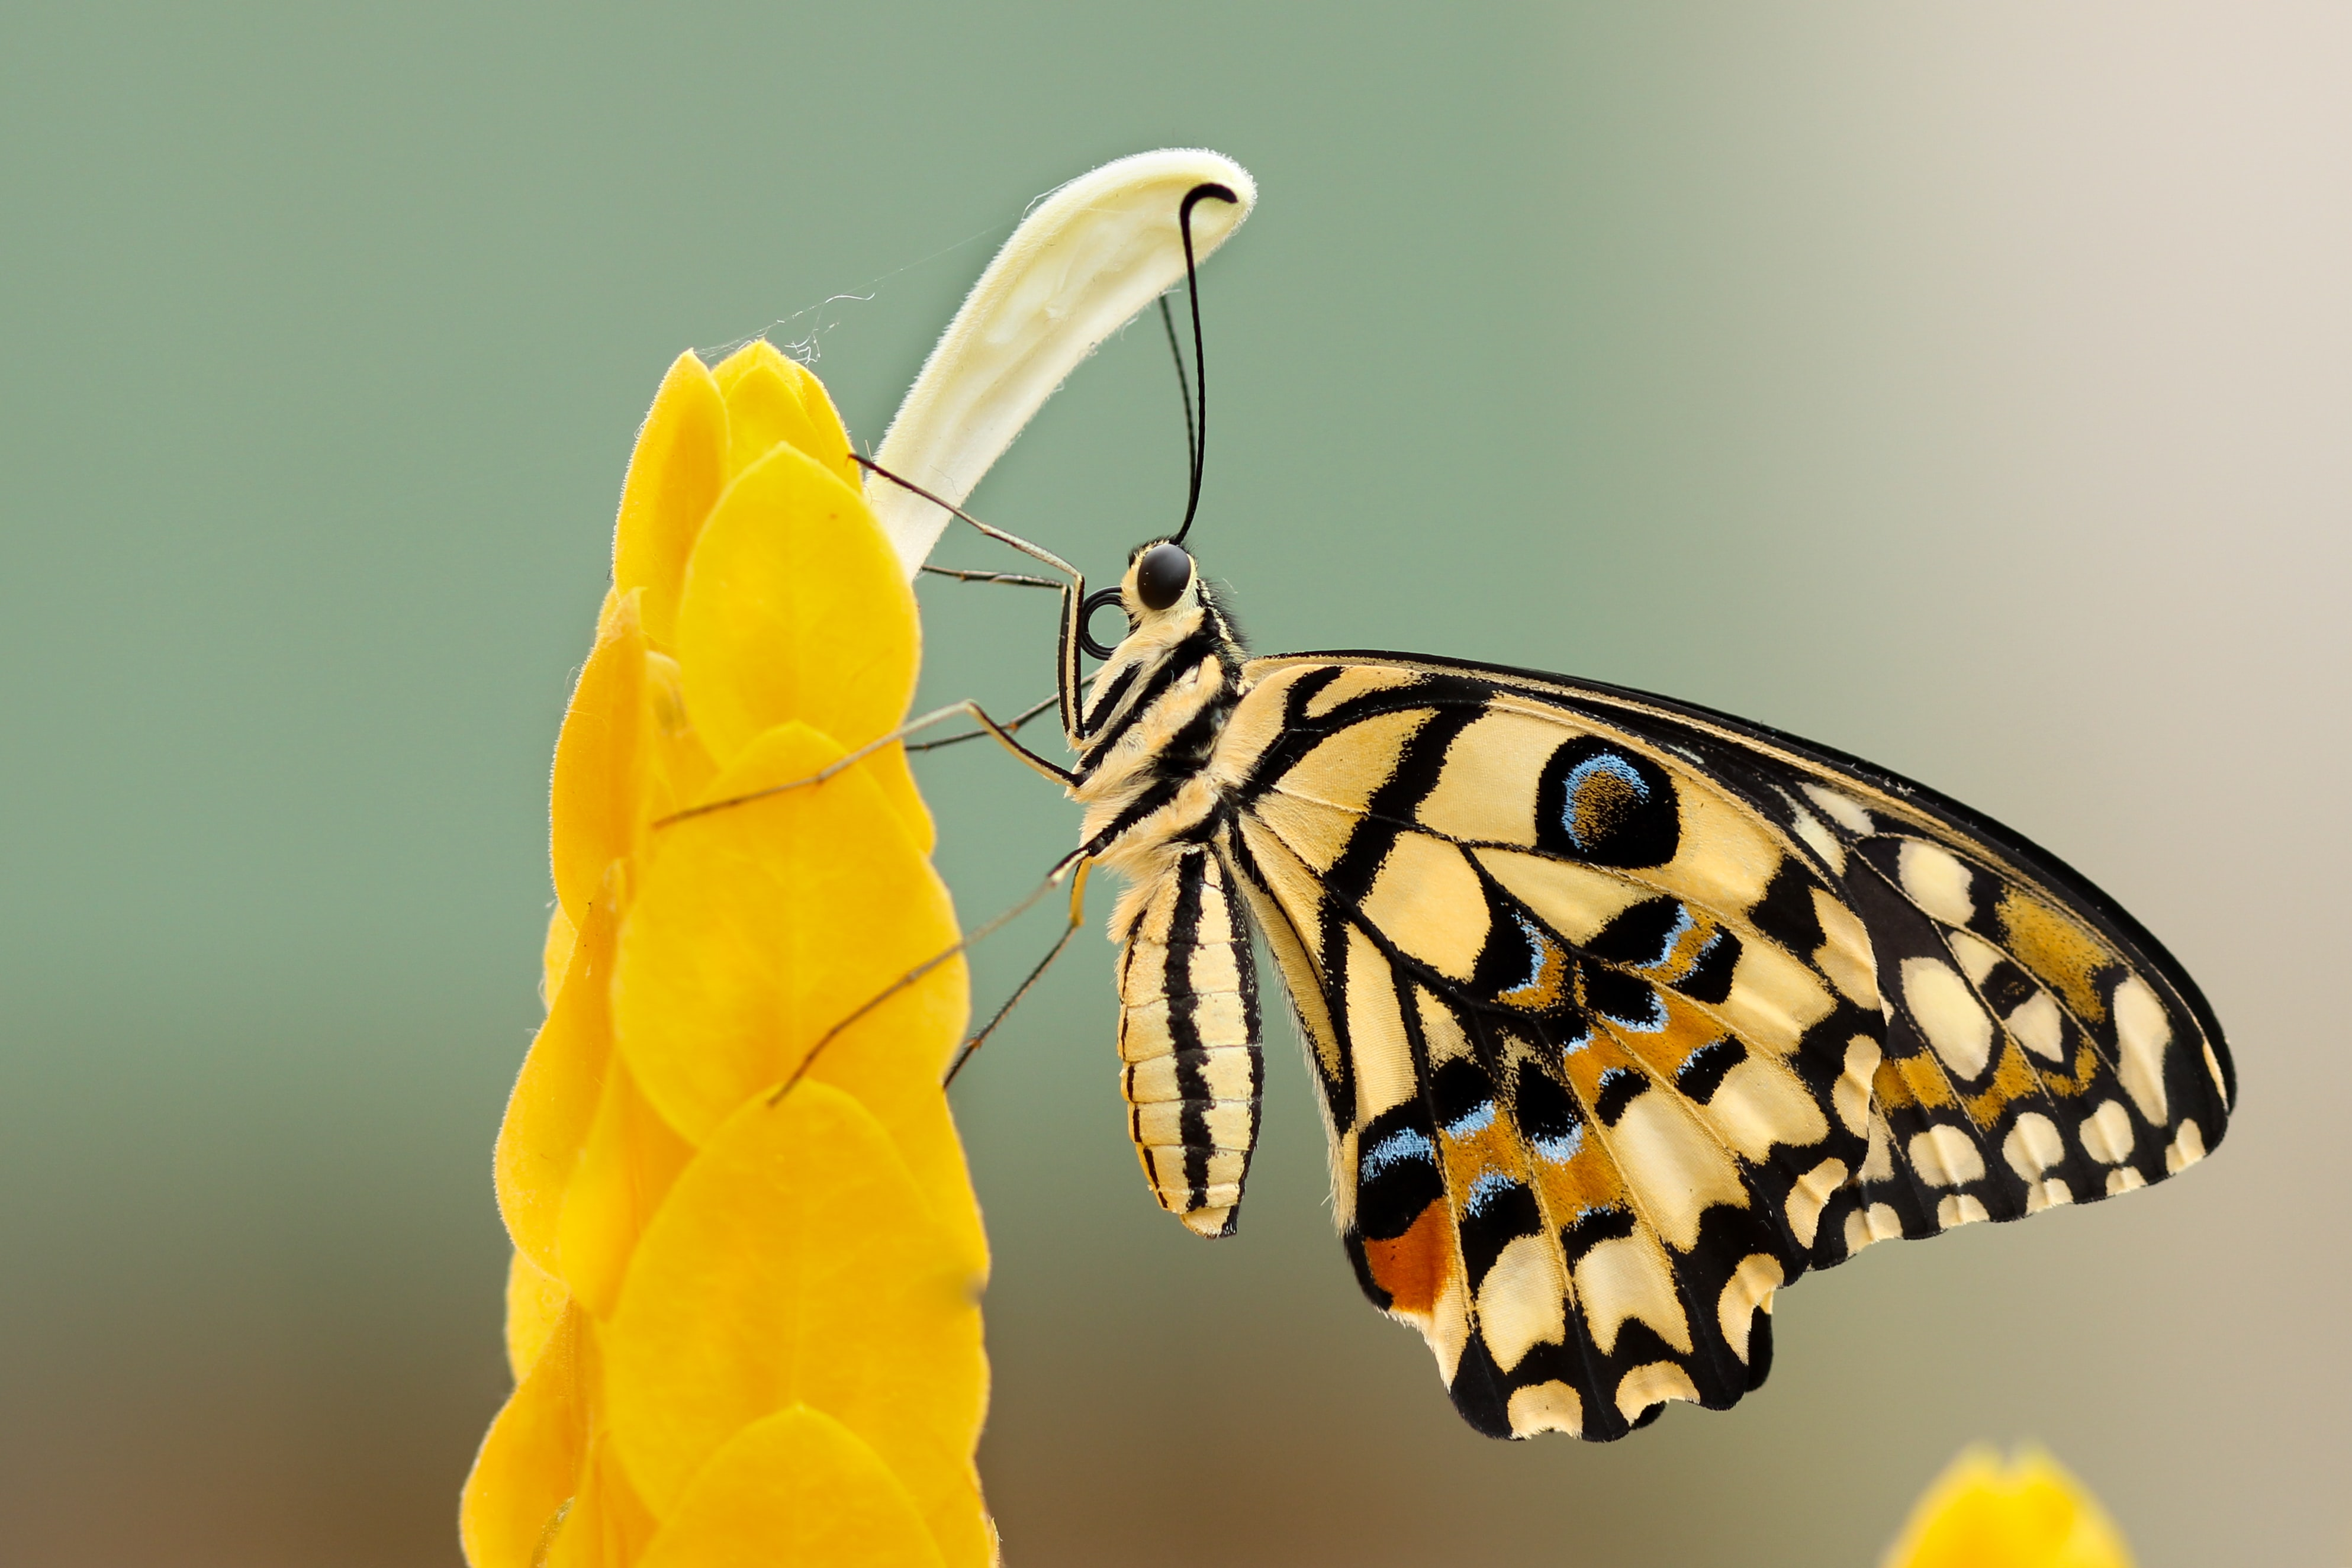 A butterfly feeding on yellow petals